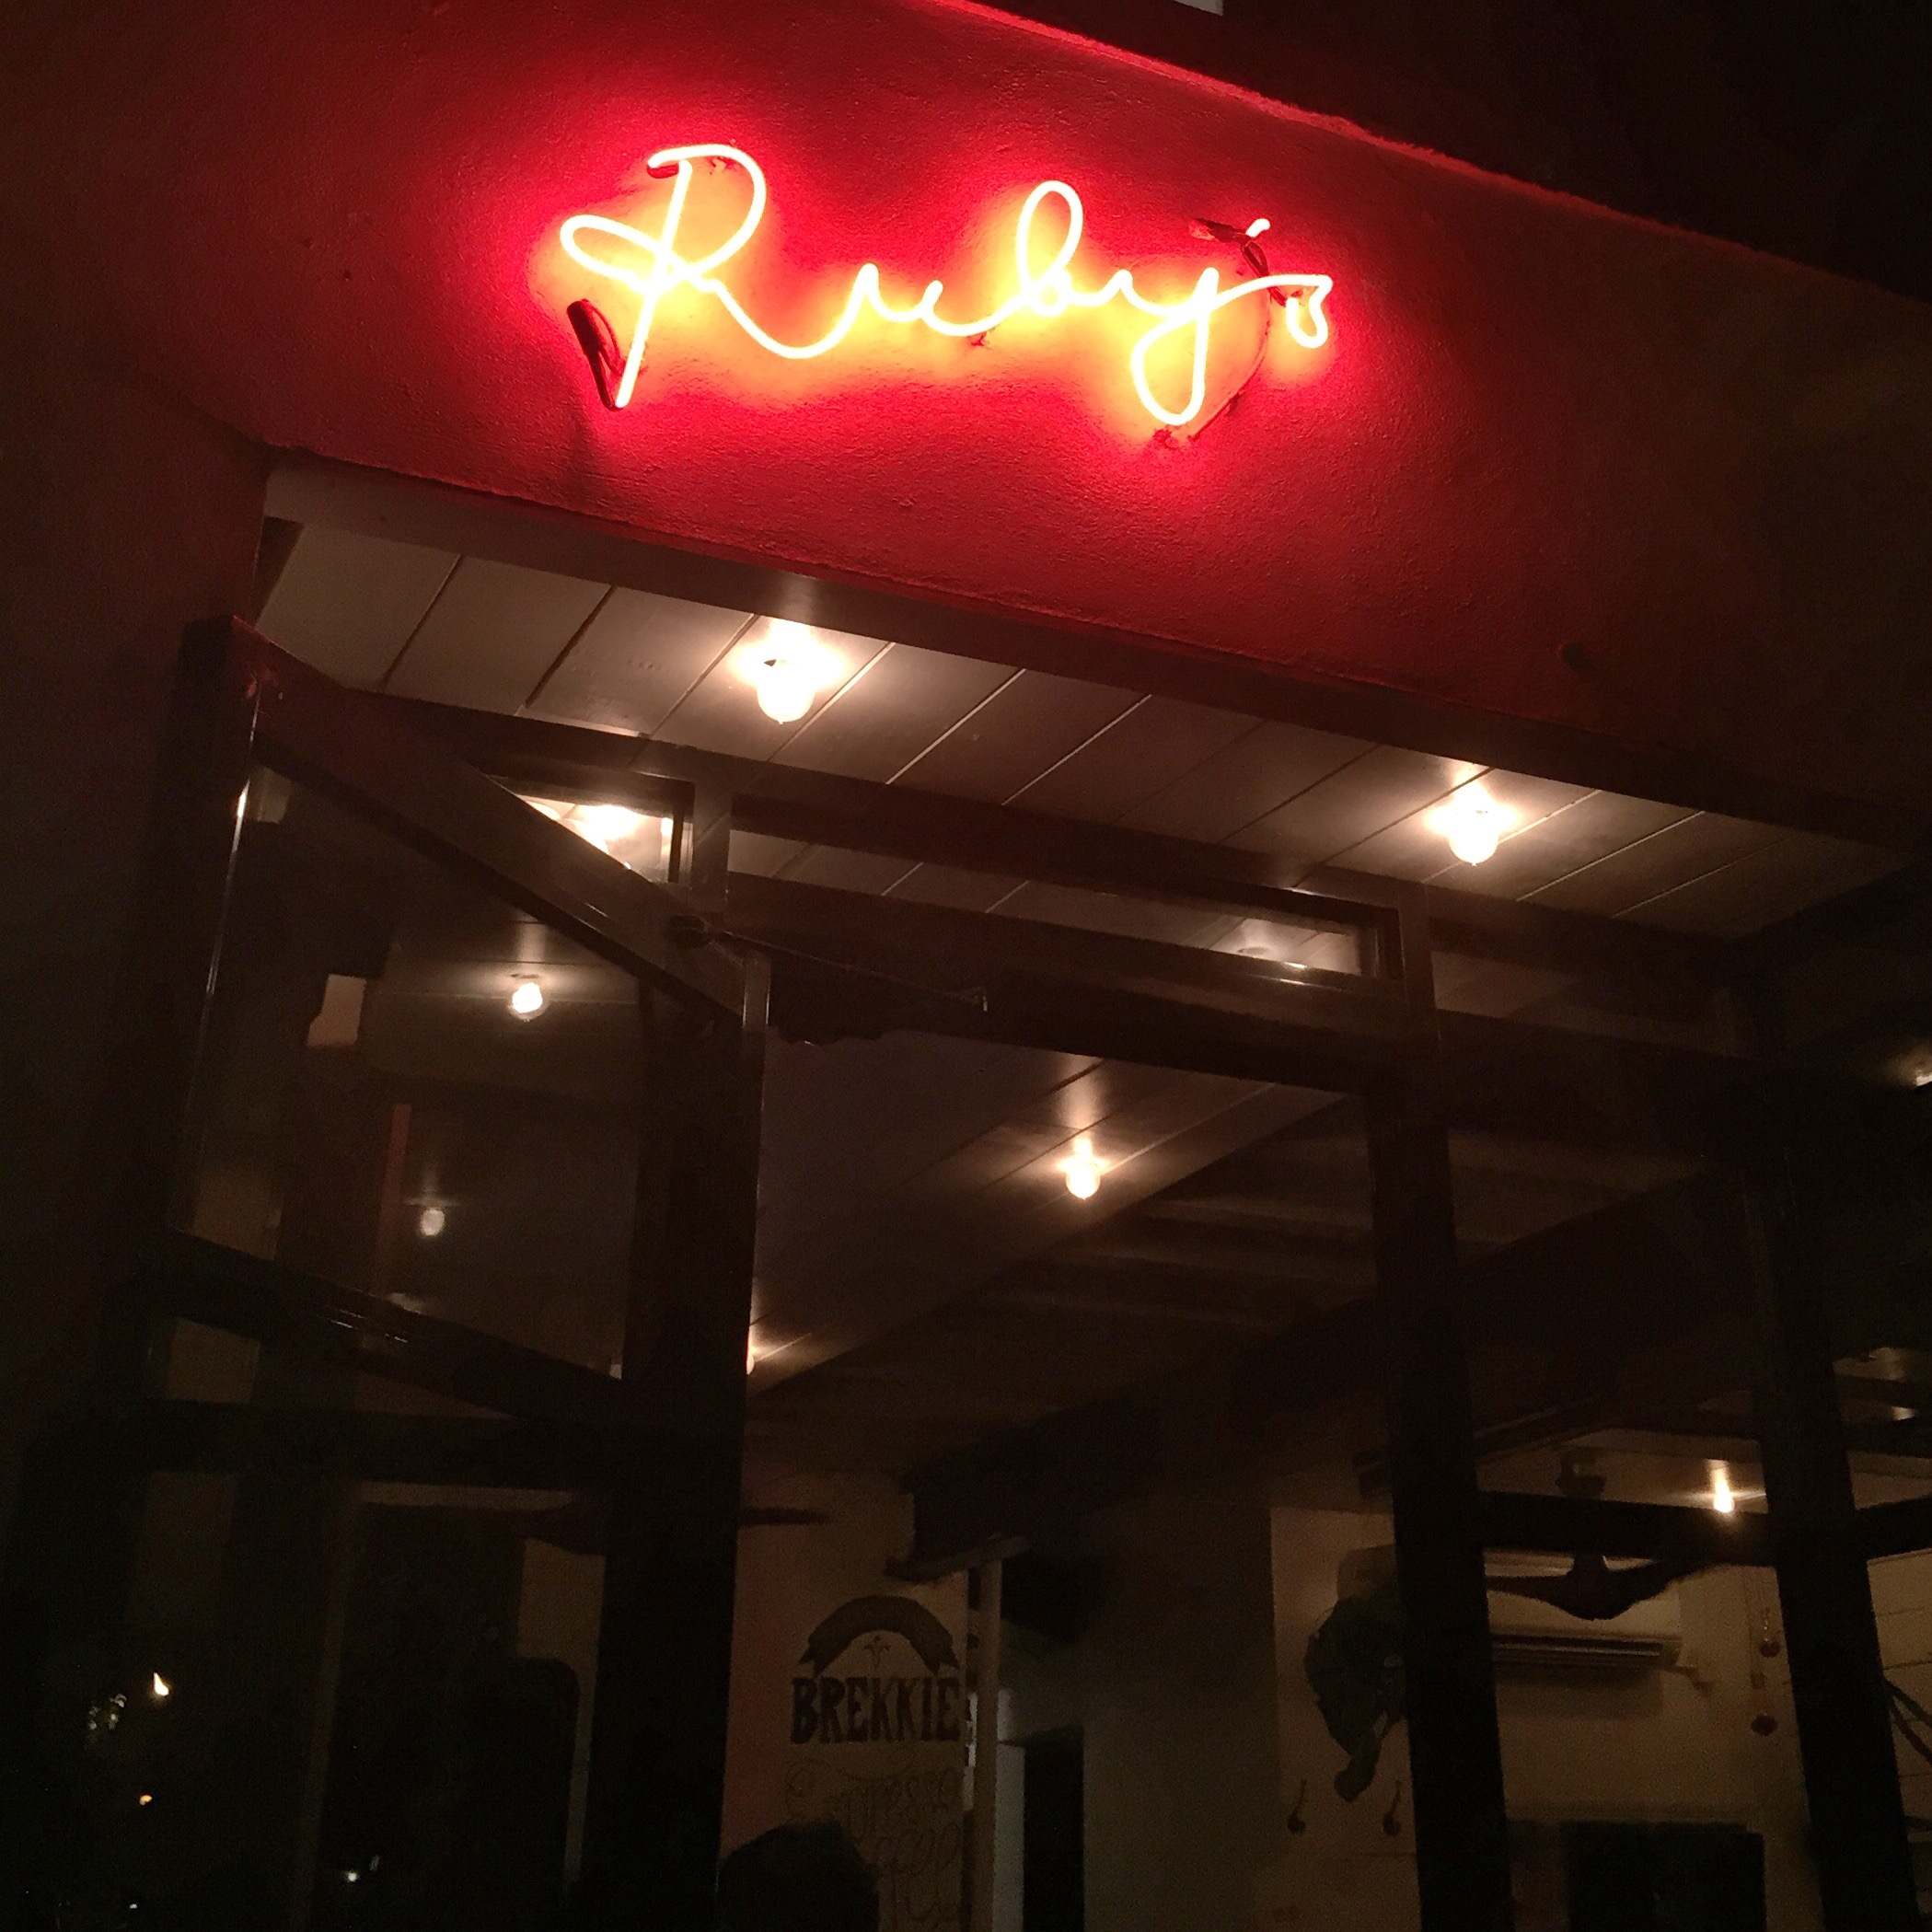 Ruby's Café, Nolita, New York